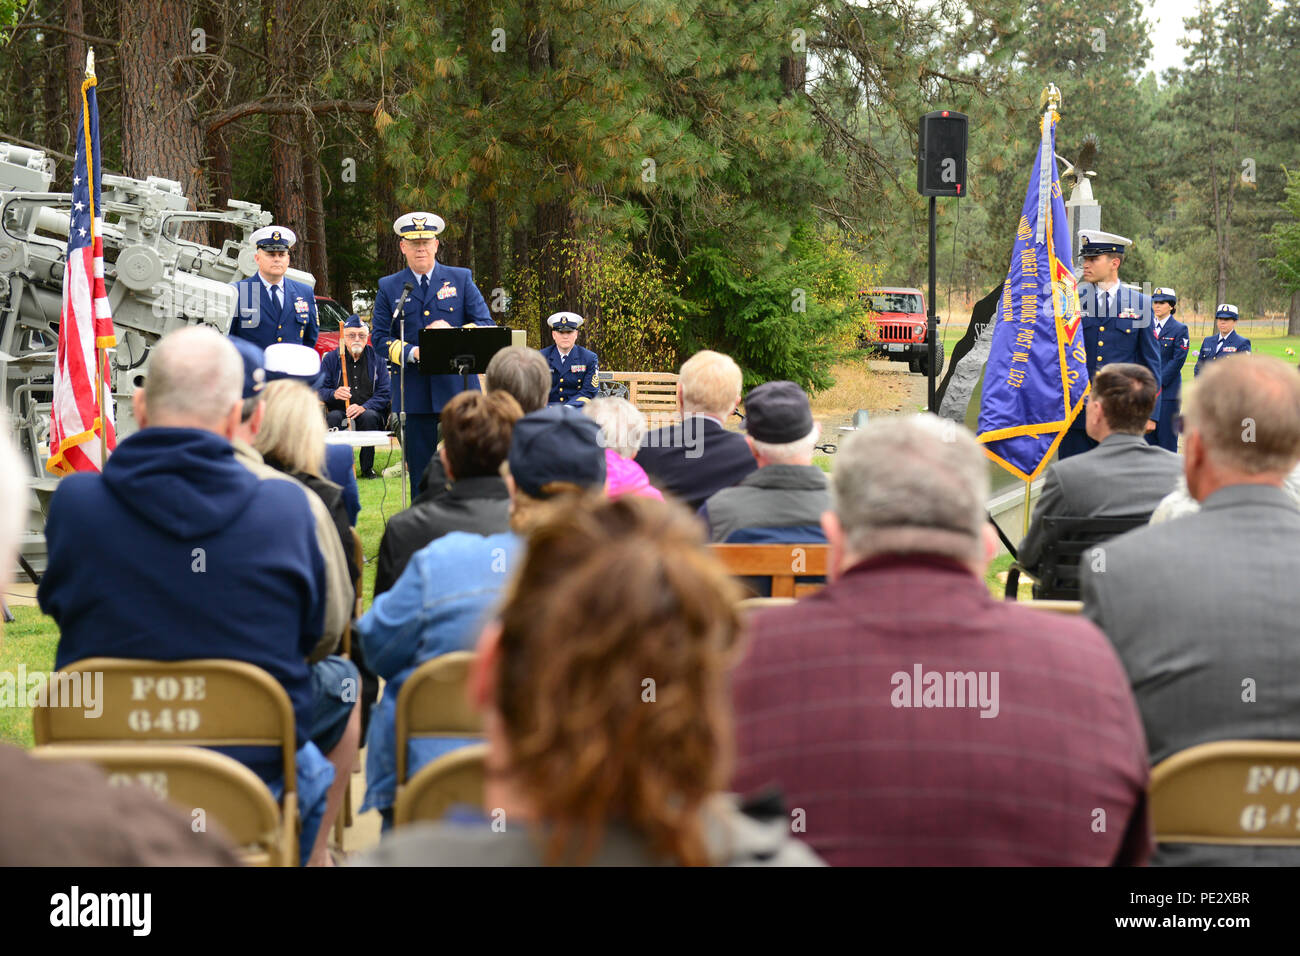 Rear Adm. Richard Gromlich, commander of the 13th Coast Guard District, addresses the crowd at the Douglas Munro Memorial Ceremony at the Laurel Hills Memorial Cemetery in Cle Clum, Wash., Sept. 25, 2015. Attendees included the mayors of Cle Elum, South Cle Elum and Roslyn; family members of Douglas Munro, former Master Chief Petty Officers of the Coast Guard, and the current Deputy Master Chief Petty Officer of the Coast Guard. (U.S. Coast Guard photo by Petty Officer 3rd Class Katelyn Shearer) - Stock Image